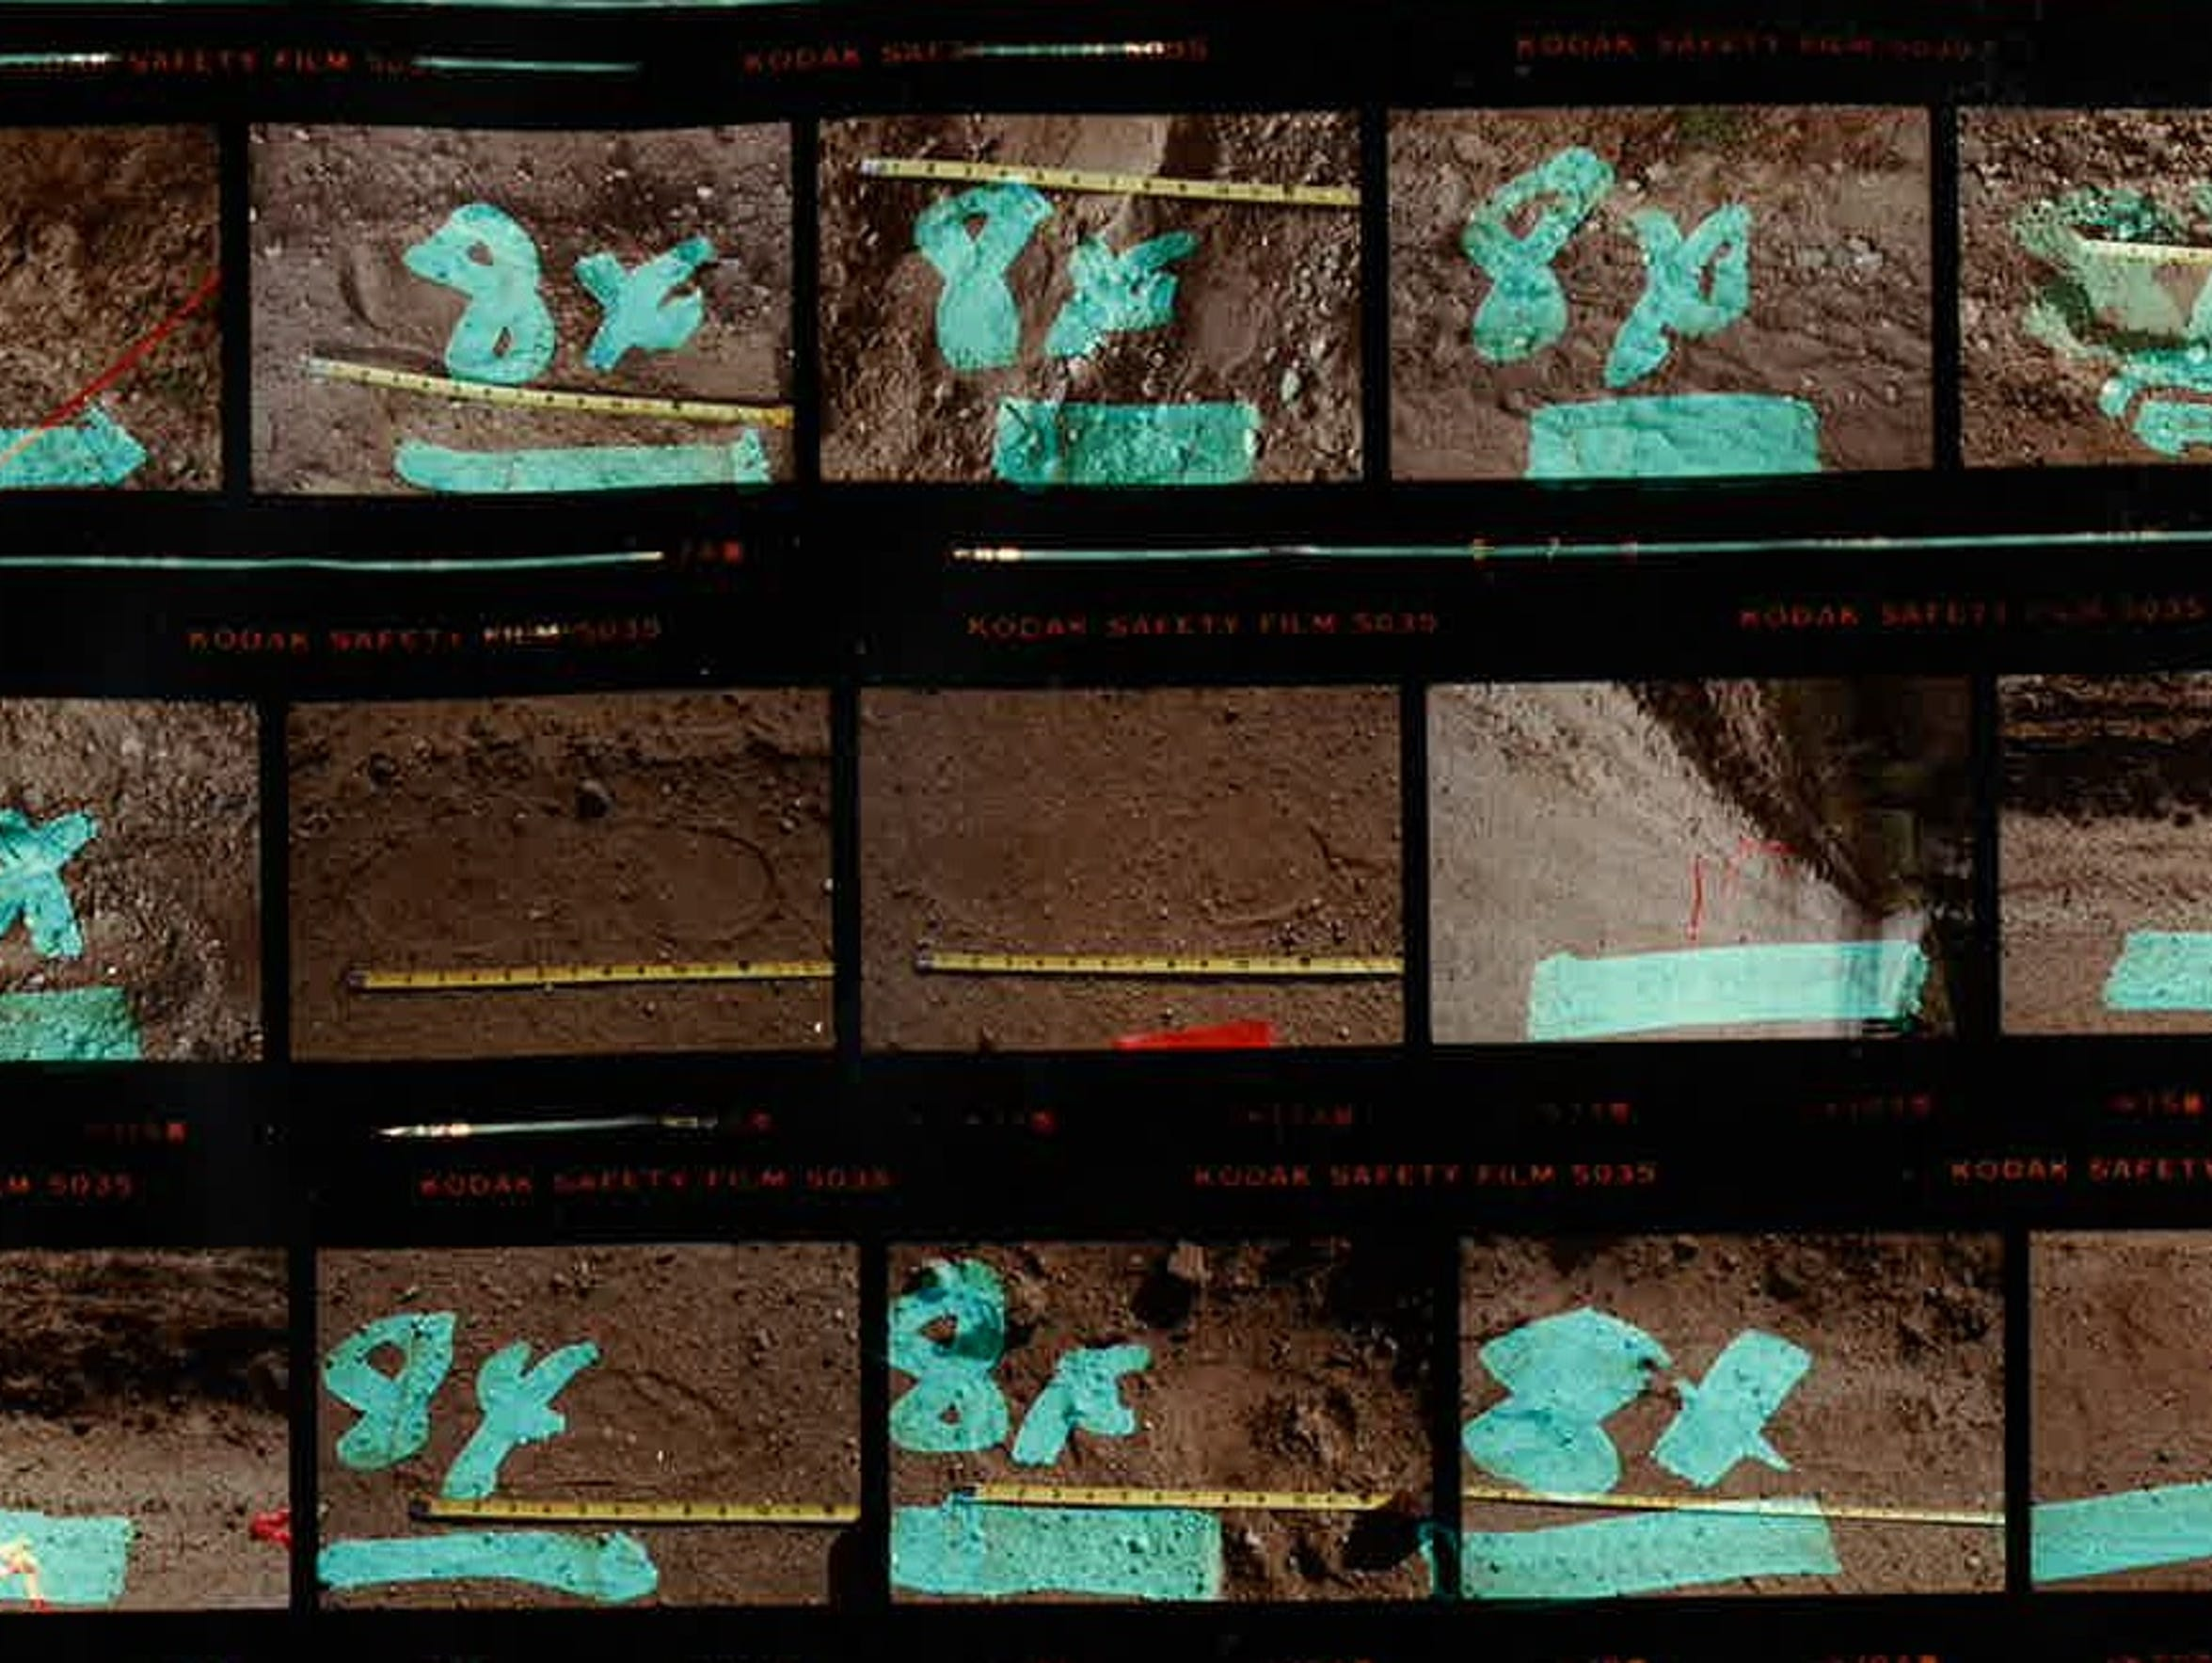 Photographs of evidence from the crime scene.